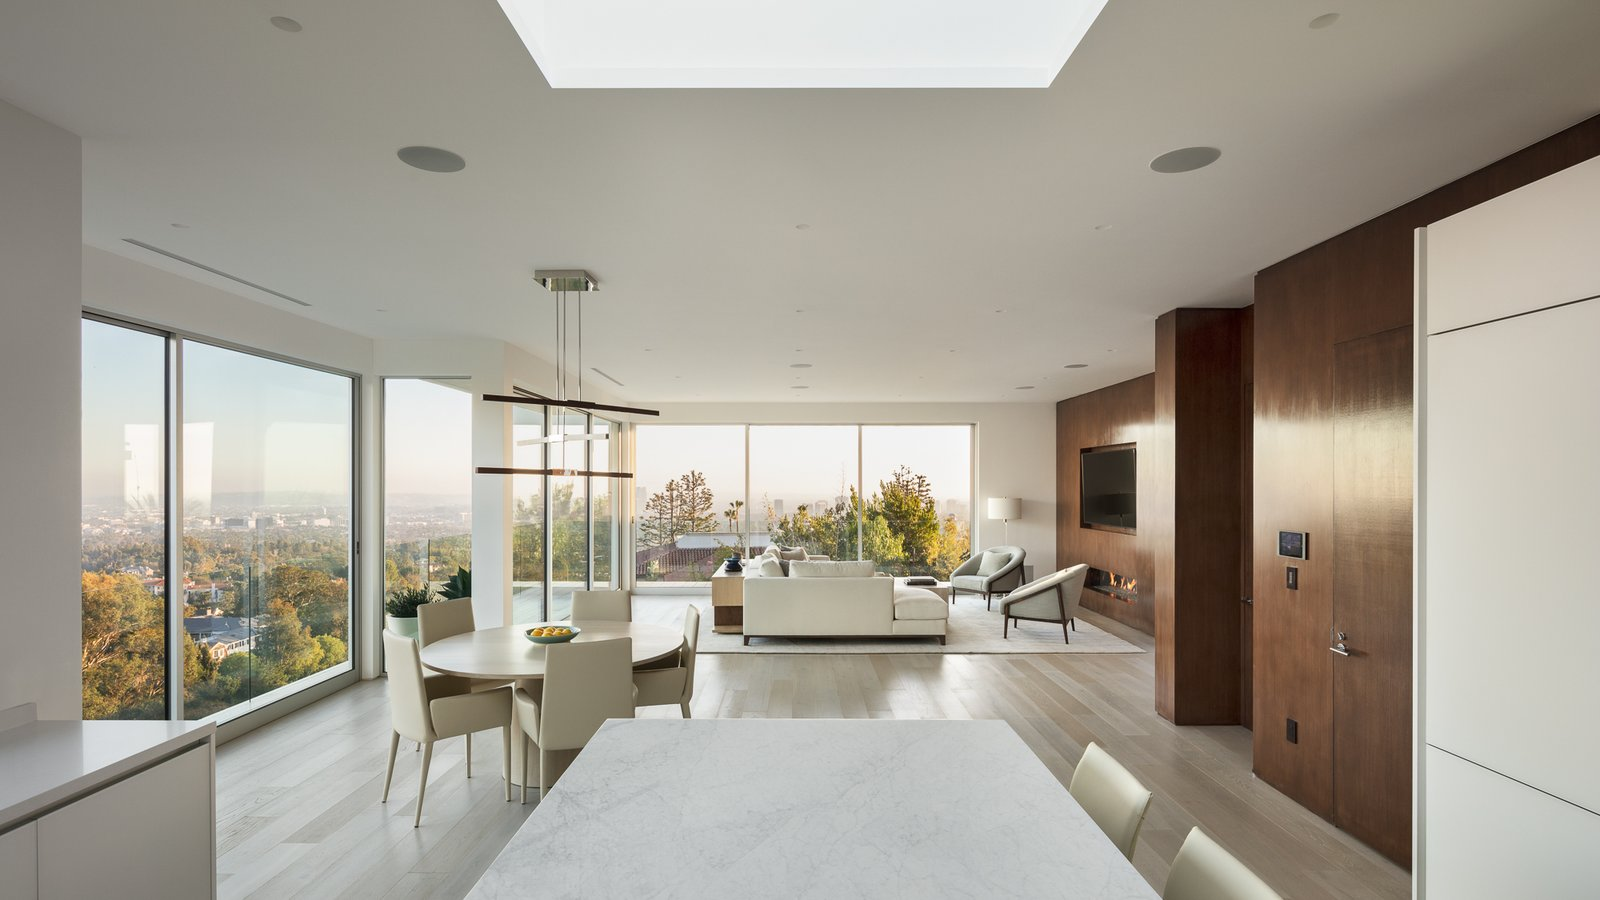 Dining, Light Hardwood, Chair, Recessed, Stools, Pendant, Table, Ceiling, Bar, Gas Burning, and Ribbon View from Kitchen   Best Dining Light Hardwood Ceiling Recessed Photos from Minimal House One